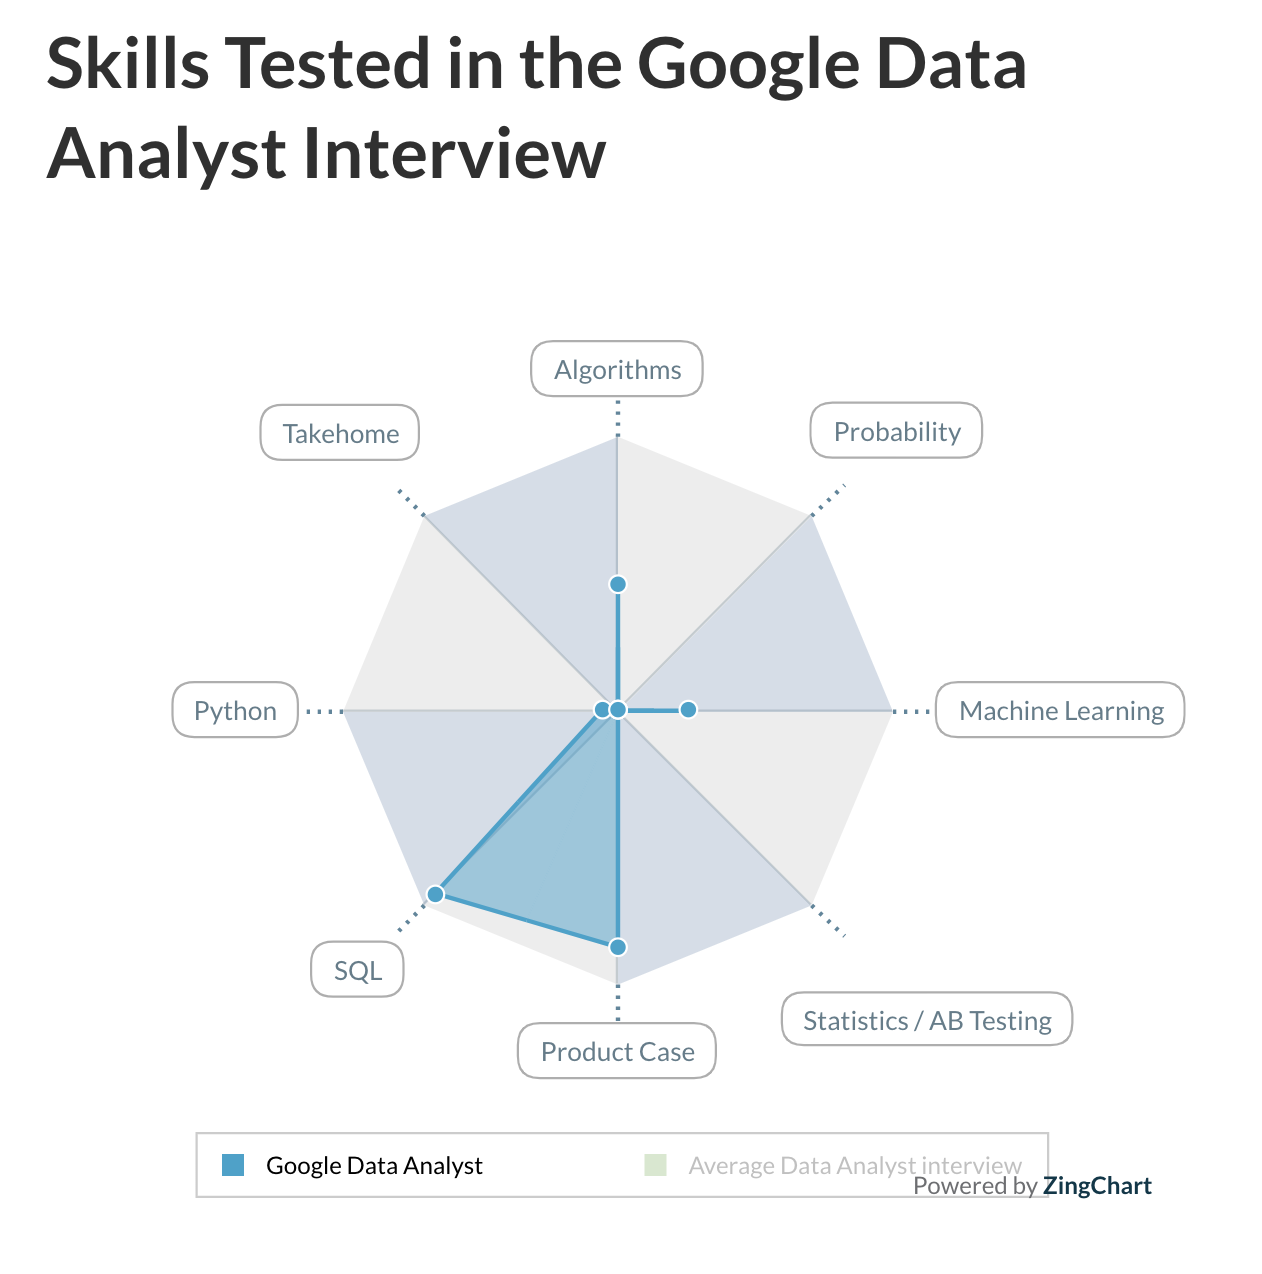 Example of skills tested in the Google data analyst interview